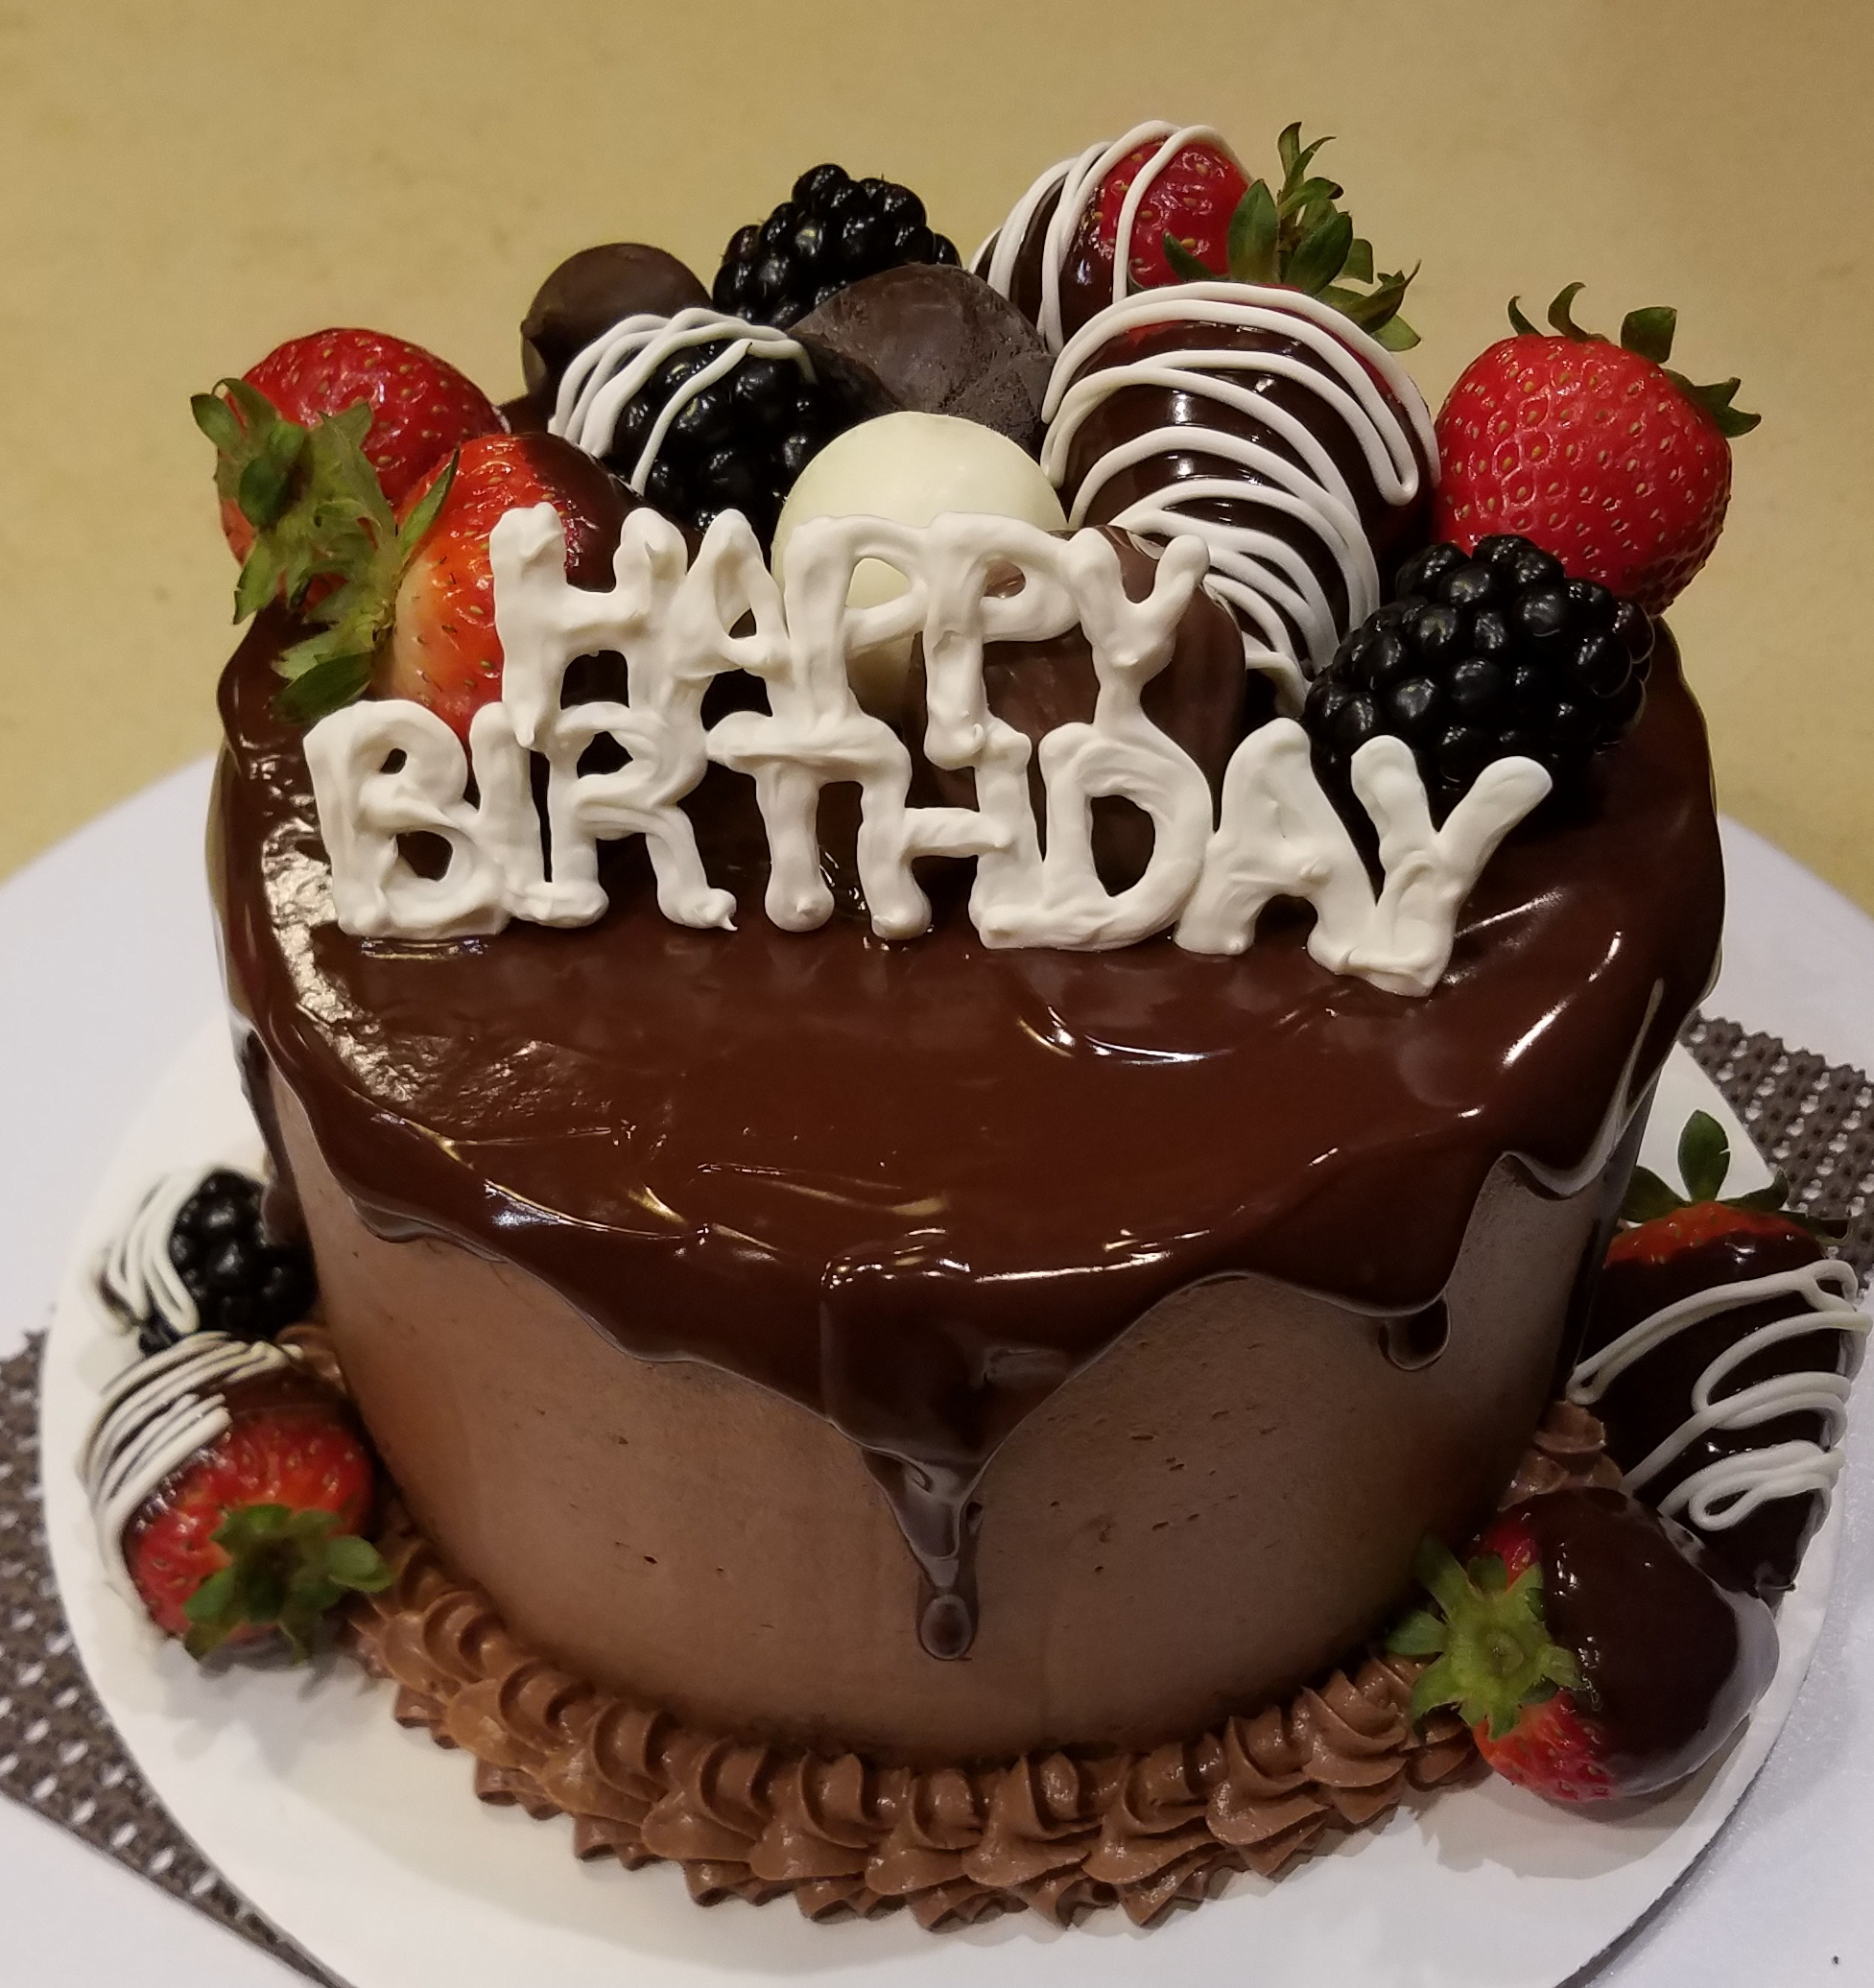 Chocolate birthday cake6